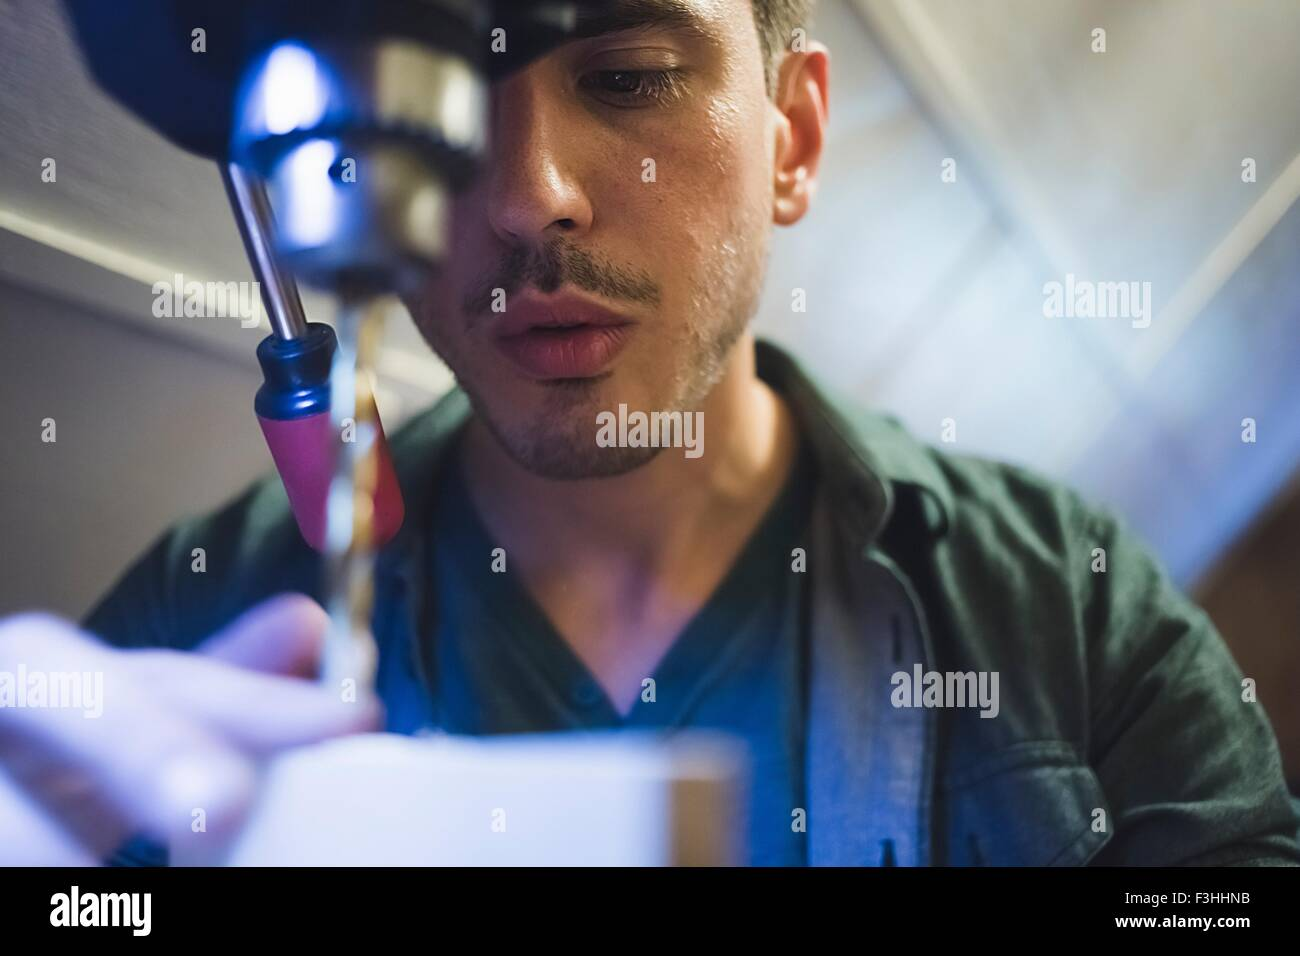 Low angle view of young man using tool, face partially obscured - Stock Image